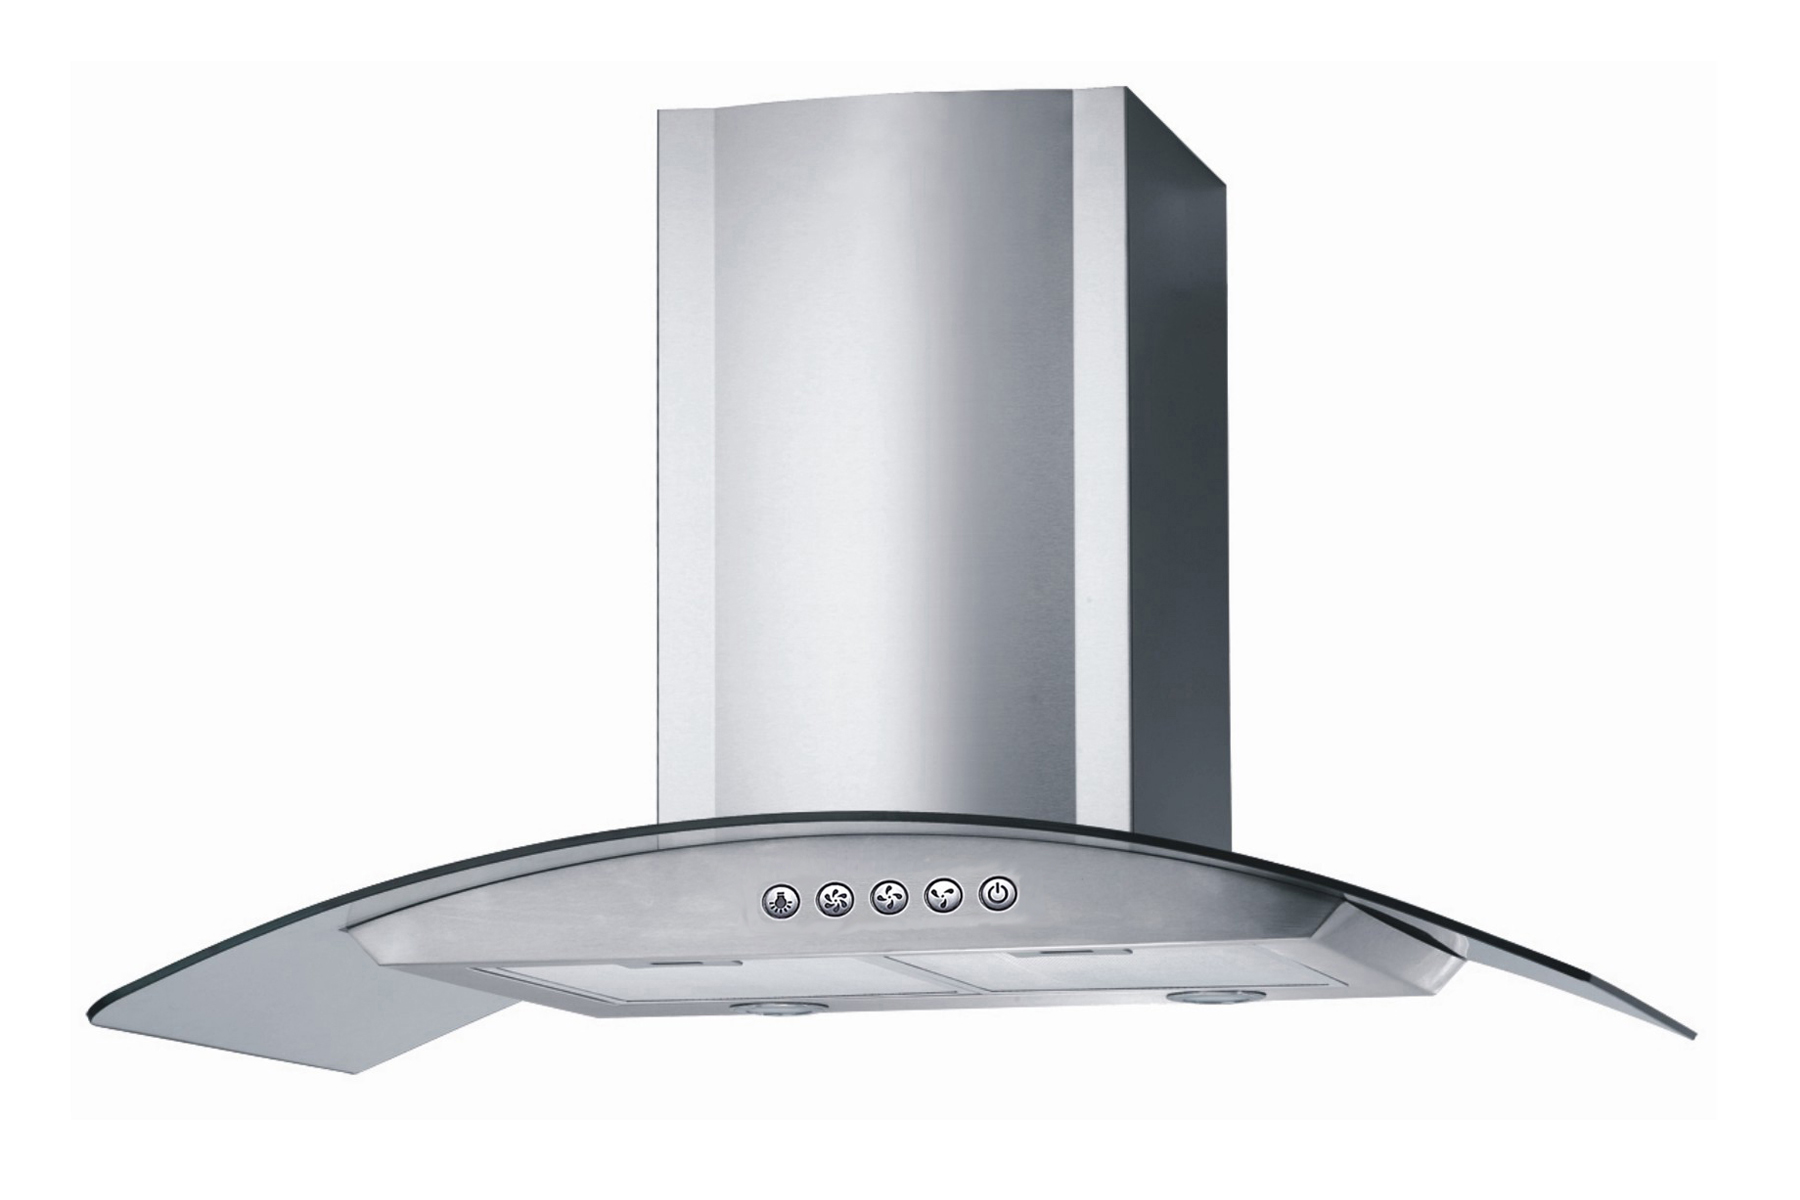 new 30 stainless steel wallmount range hood kitchen cook